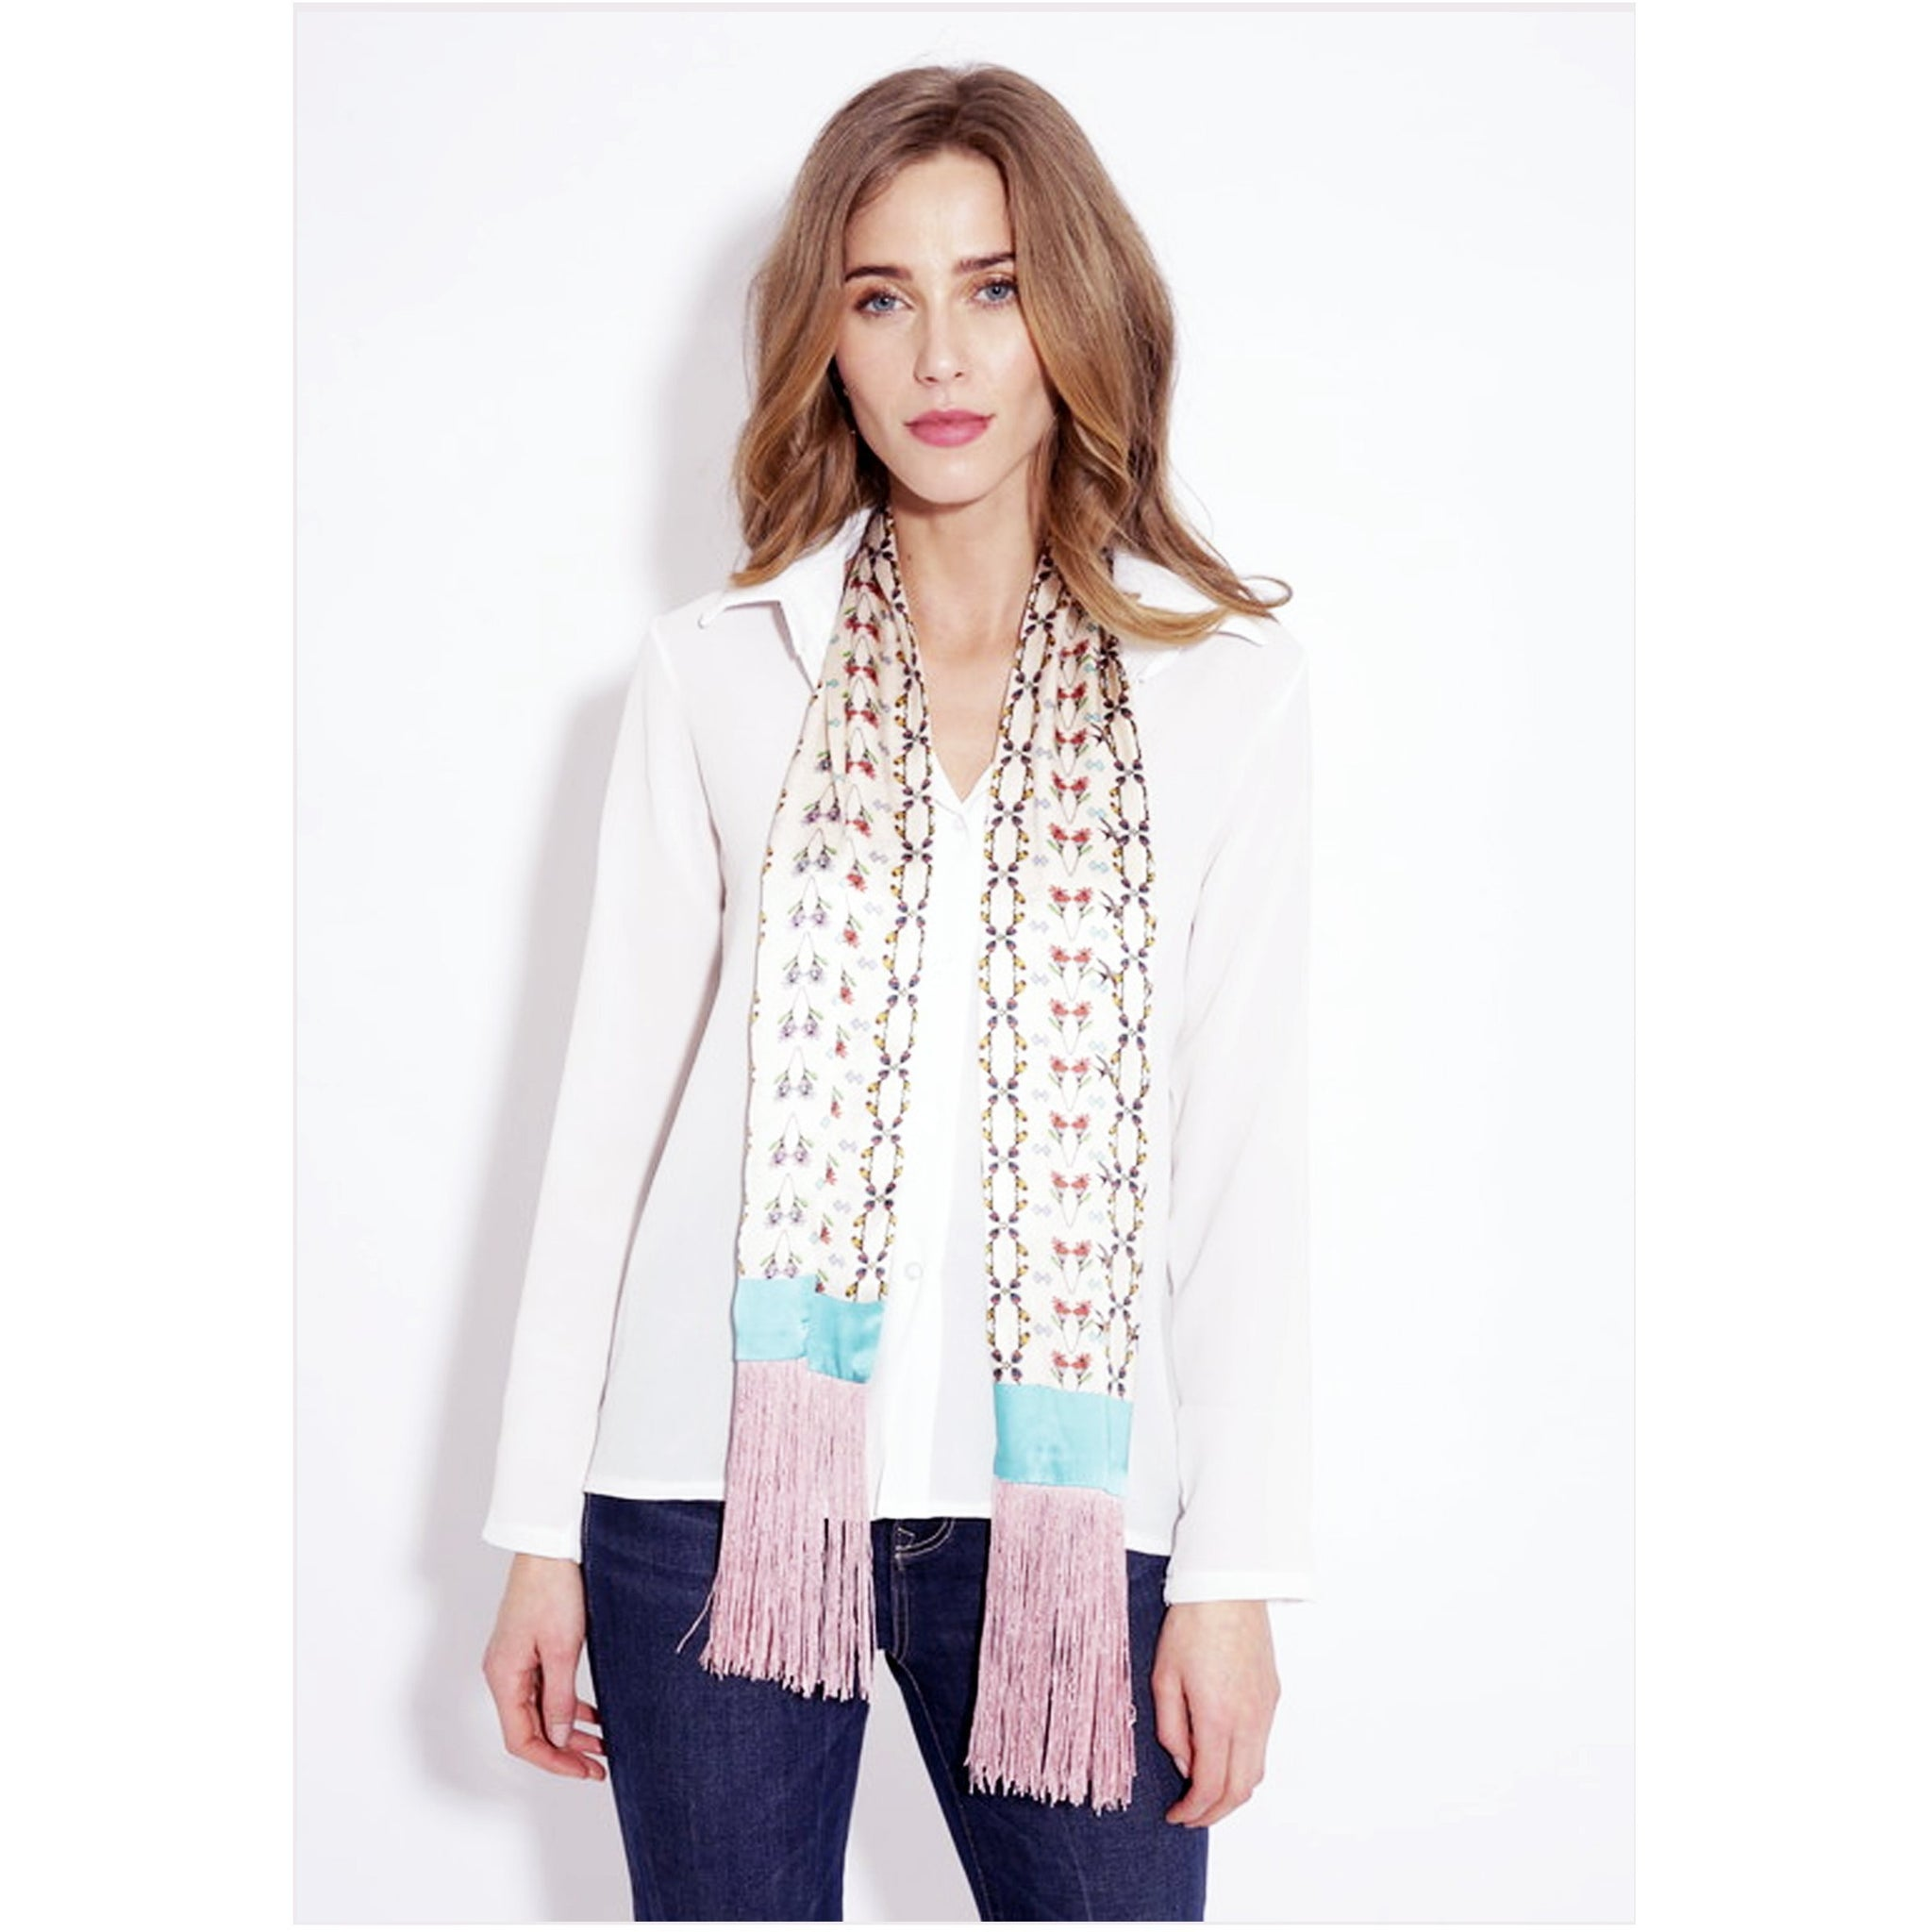 Jessica Russell Flint Silk Skinny Tassel Scarf Luxury Accessories Gift Gifting Ideas Spring Summer Pink Unique Print Prairie Check